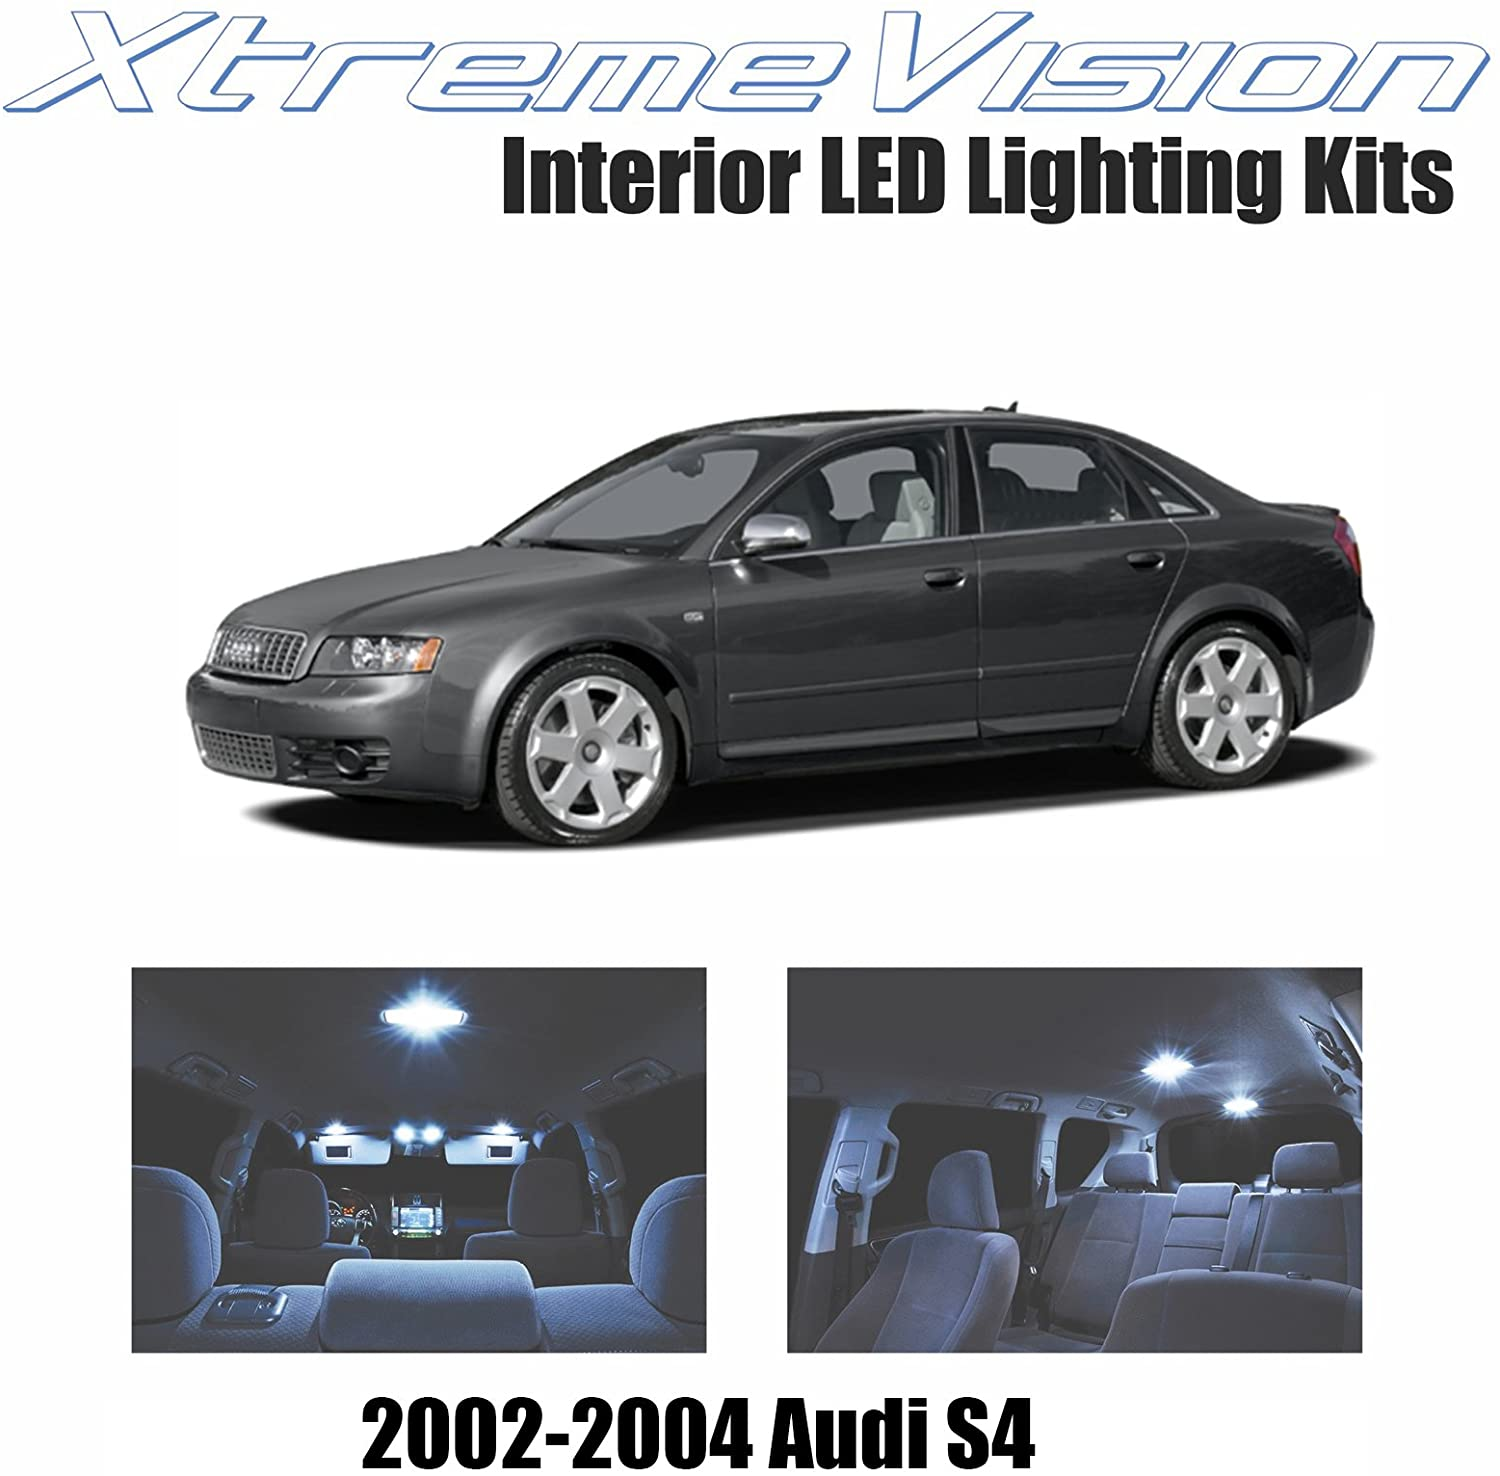 XtremeVision LED for Audi S4 2002-2004 (14 Pieces) Cool White Premium Interior LED Kit Package + Installation Tool